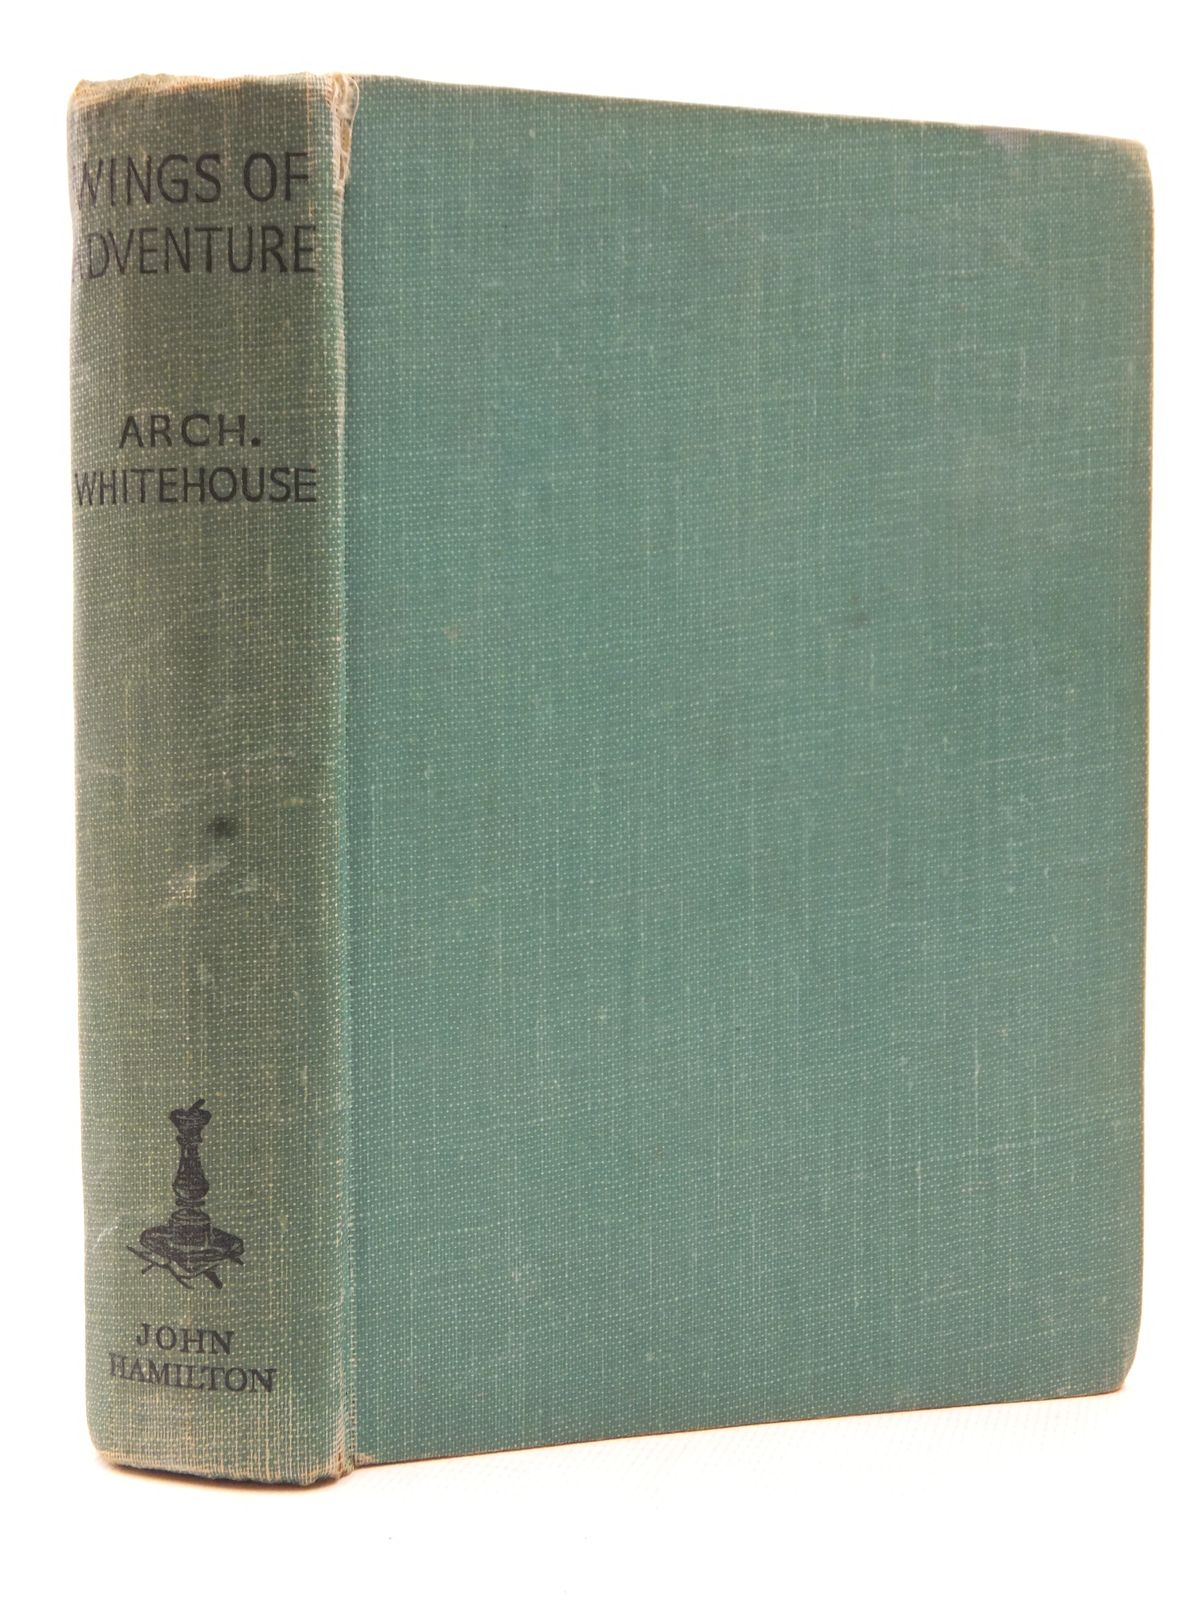 Photo of WINGS OF ADVENTURE written by Whitehouse, Arch published by John Hamilton Ltd. (STOCK CODE: 2123190)  for sale by Stella & Rose's Books